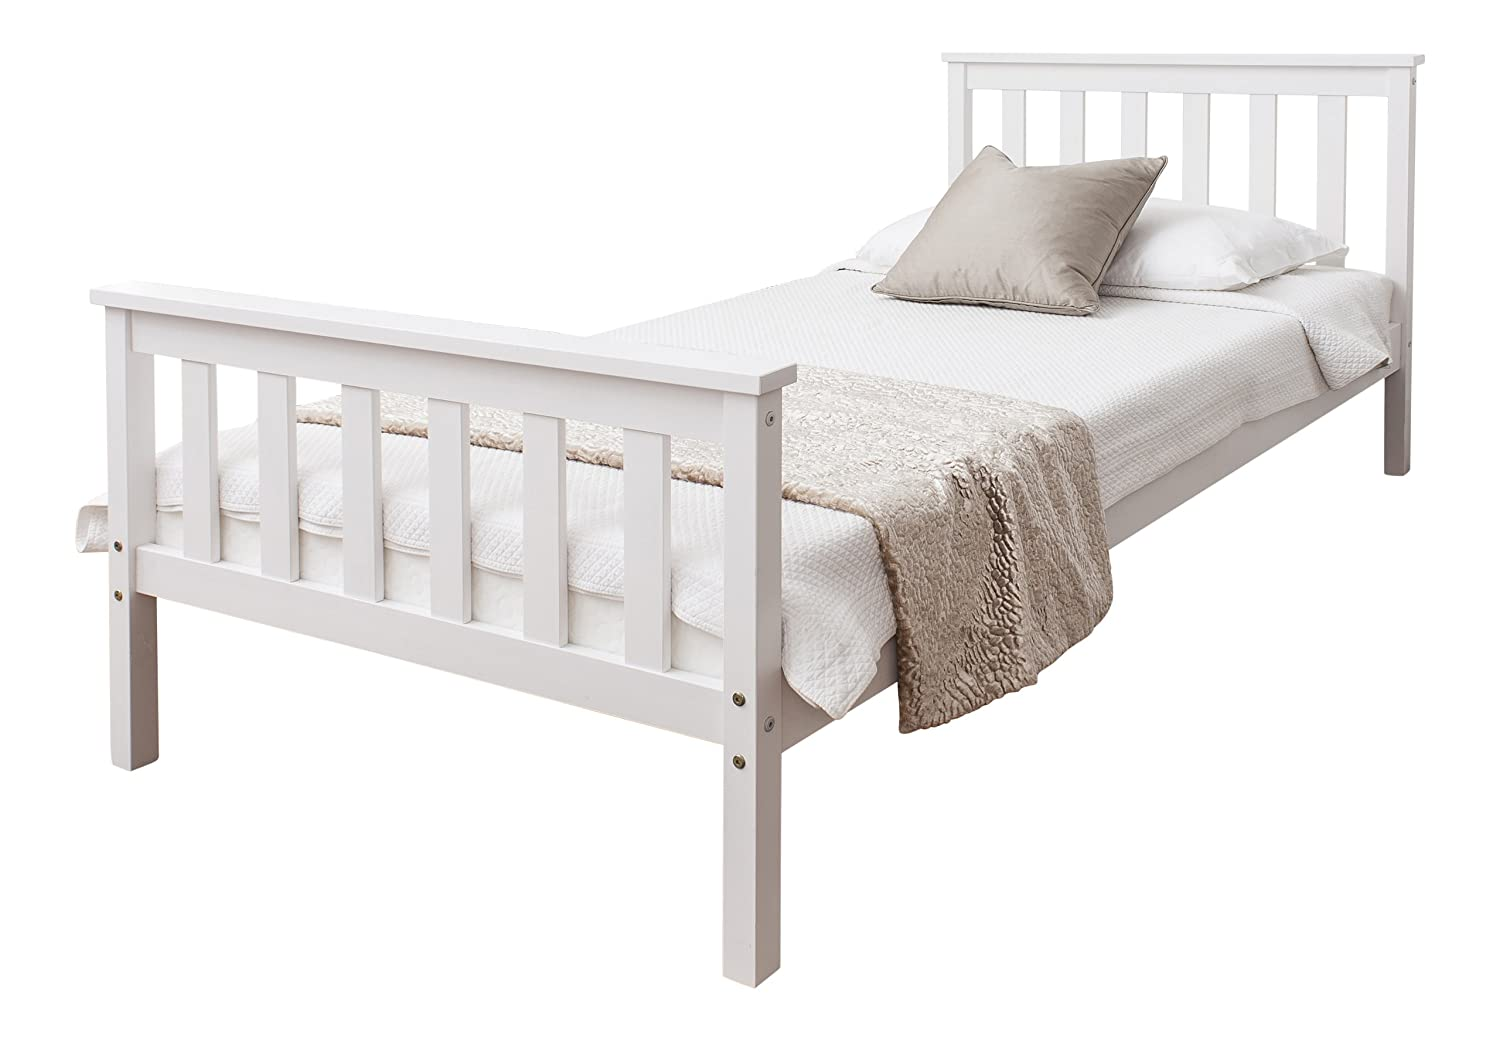 wish norman urban ireland harvey white bed compare single add to bedroom lifestyle childrens list beds